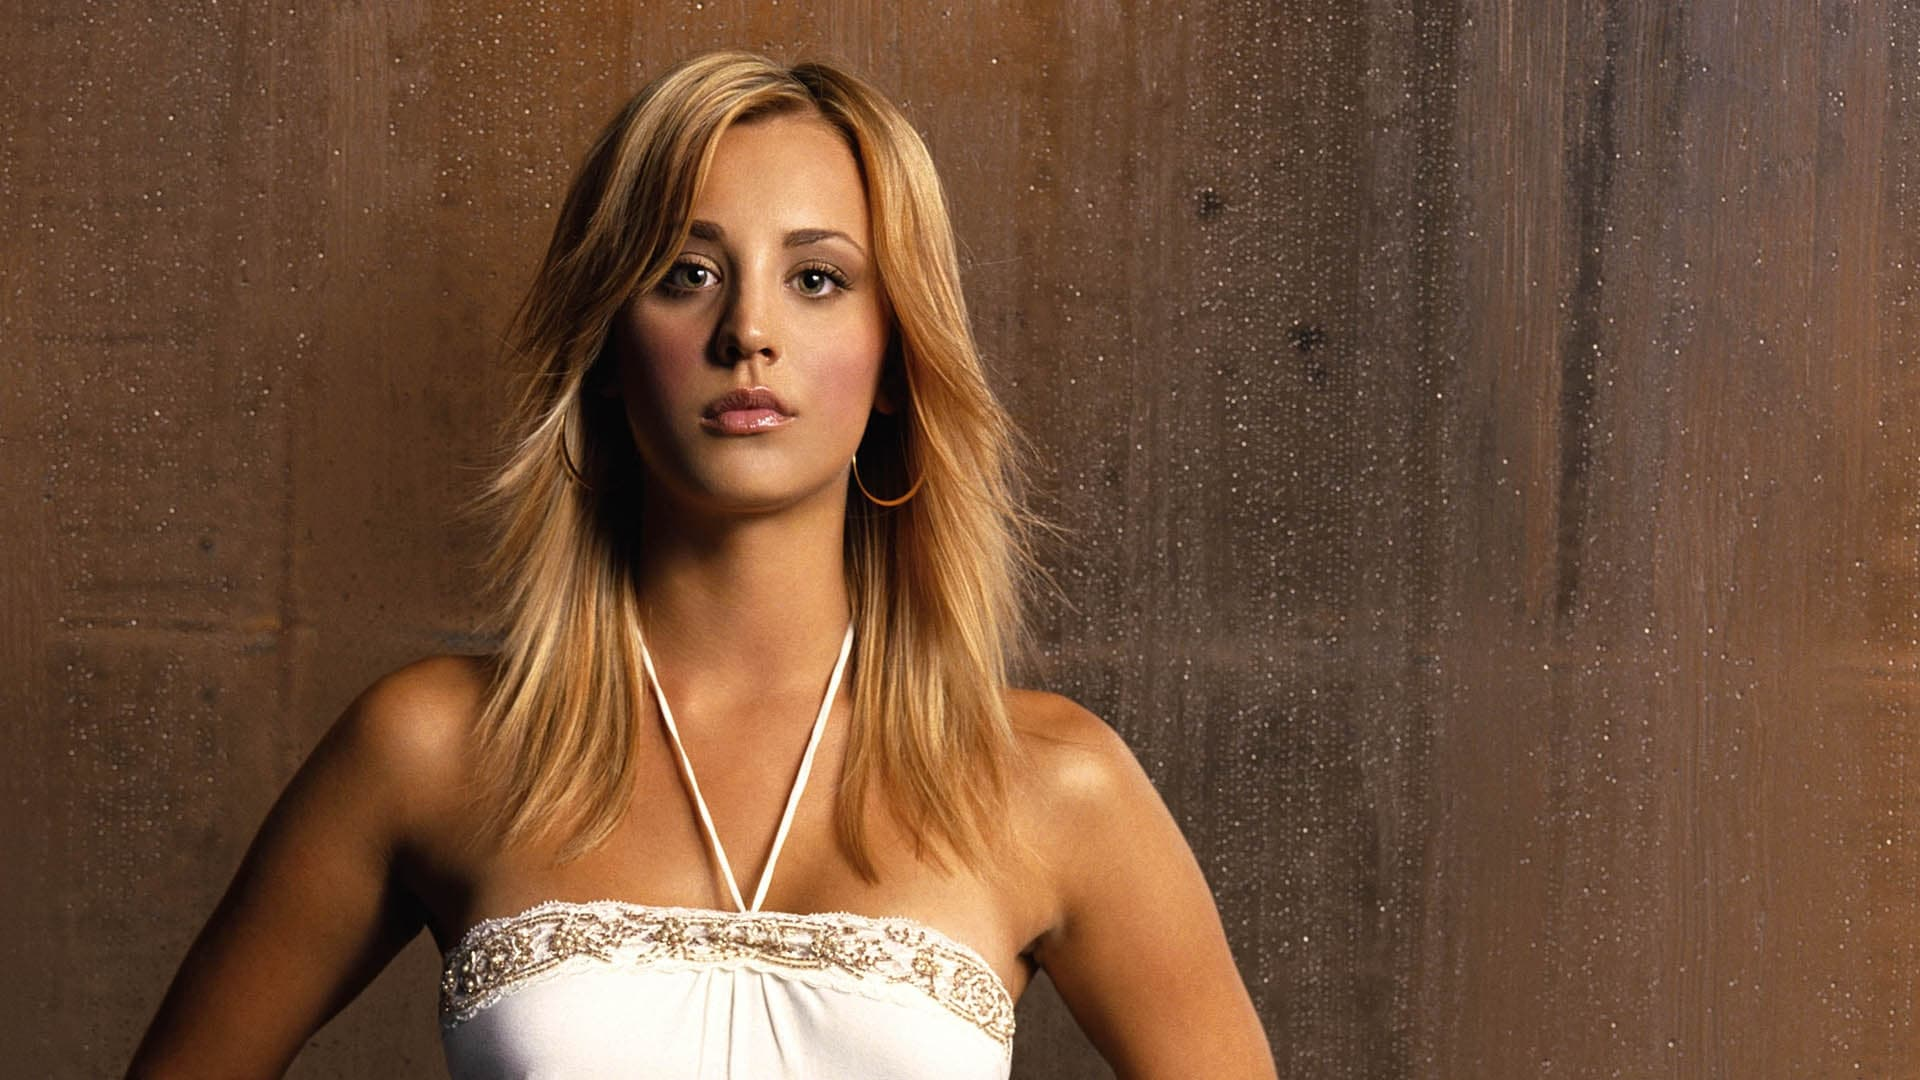 20 kaley cuoco wallpapers high quality download